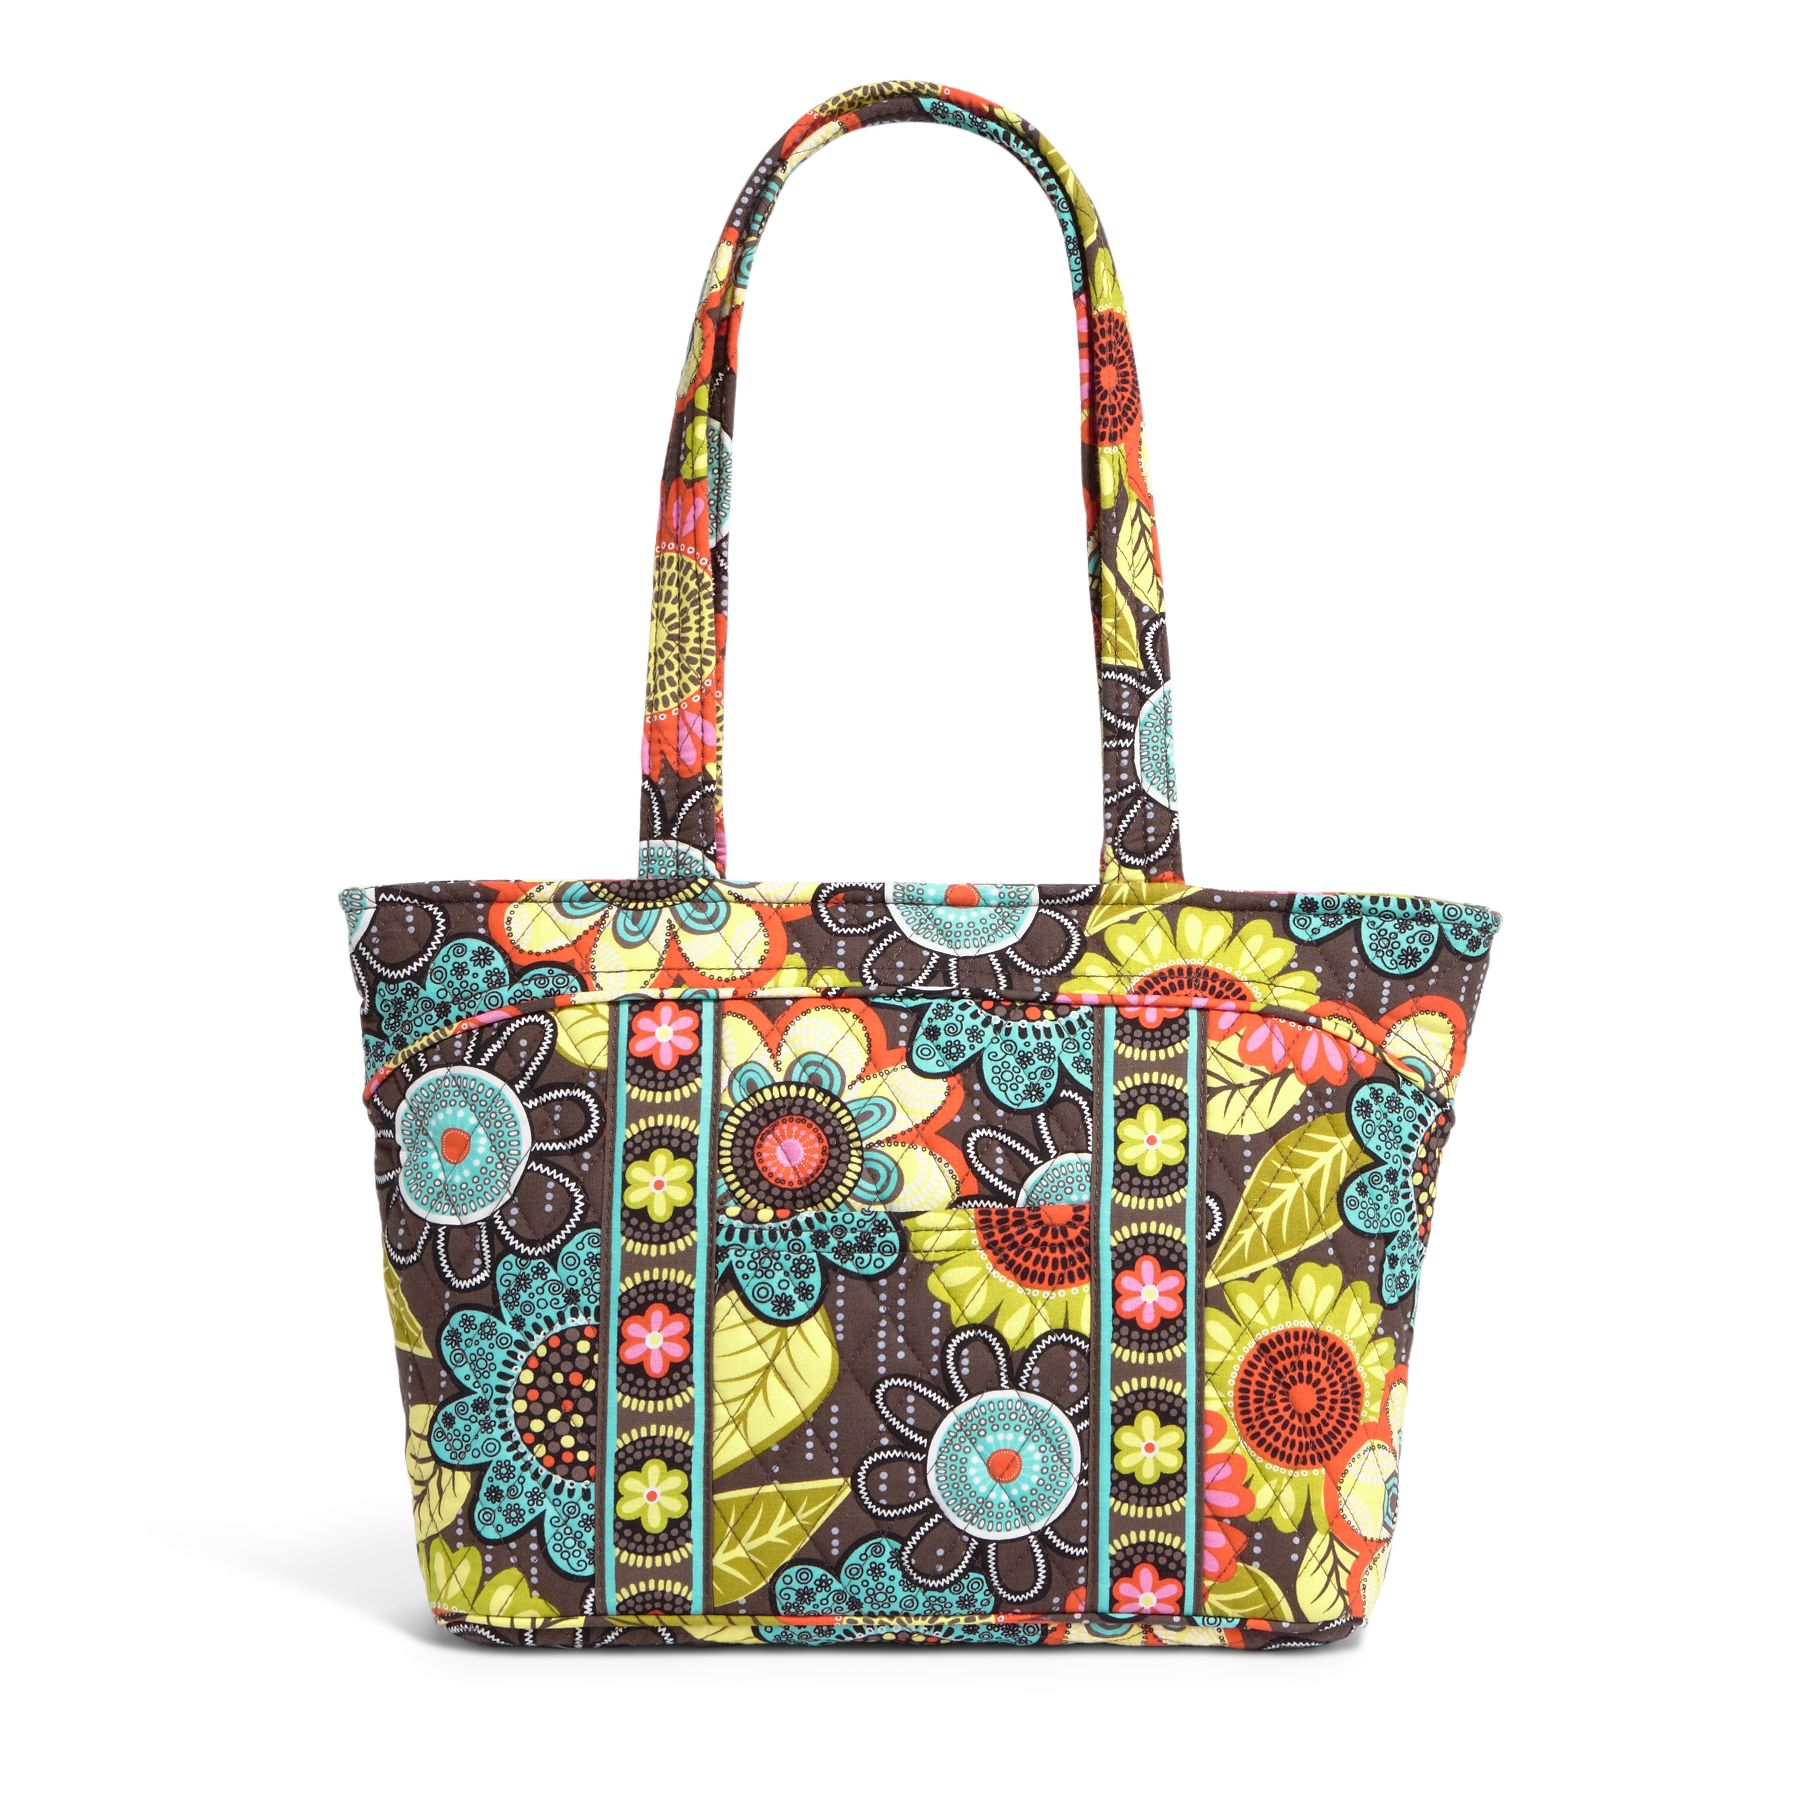 Vera Bradley Mandy Shoulder Bag in Flower Shower